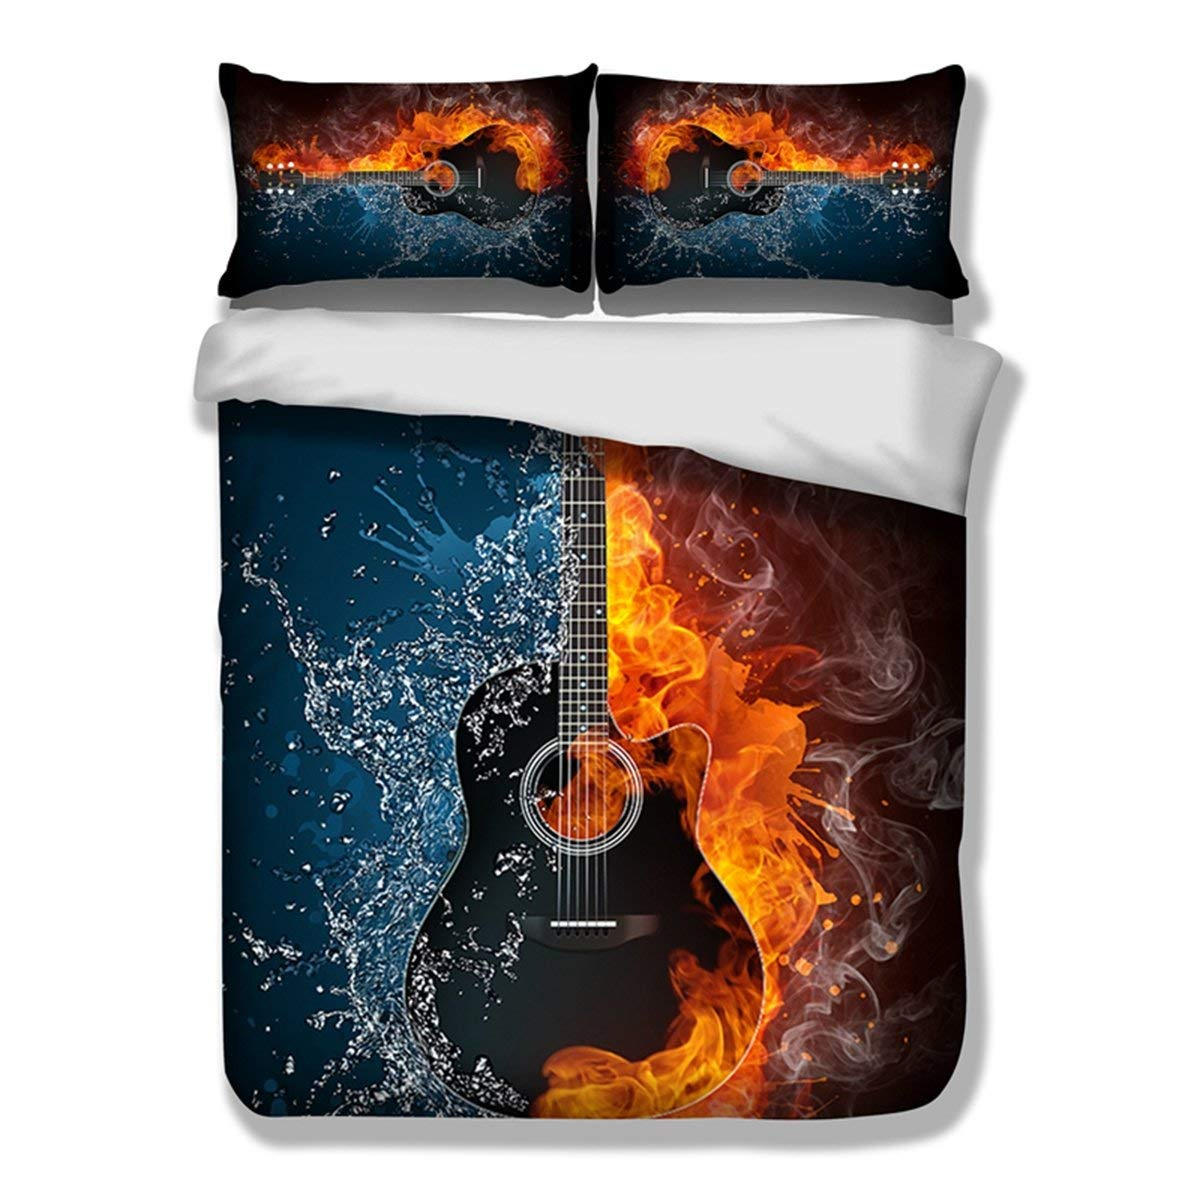 Feelyou Kids Duvet Cover Set Full Size 3D Print Bedding Set for Boys Men Decorative Music Themed Guitar Microfiber Polyester Comforter Cover with 2 Pillow Shams, Zipper Closure, Colorful 3 Pieces